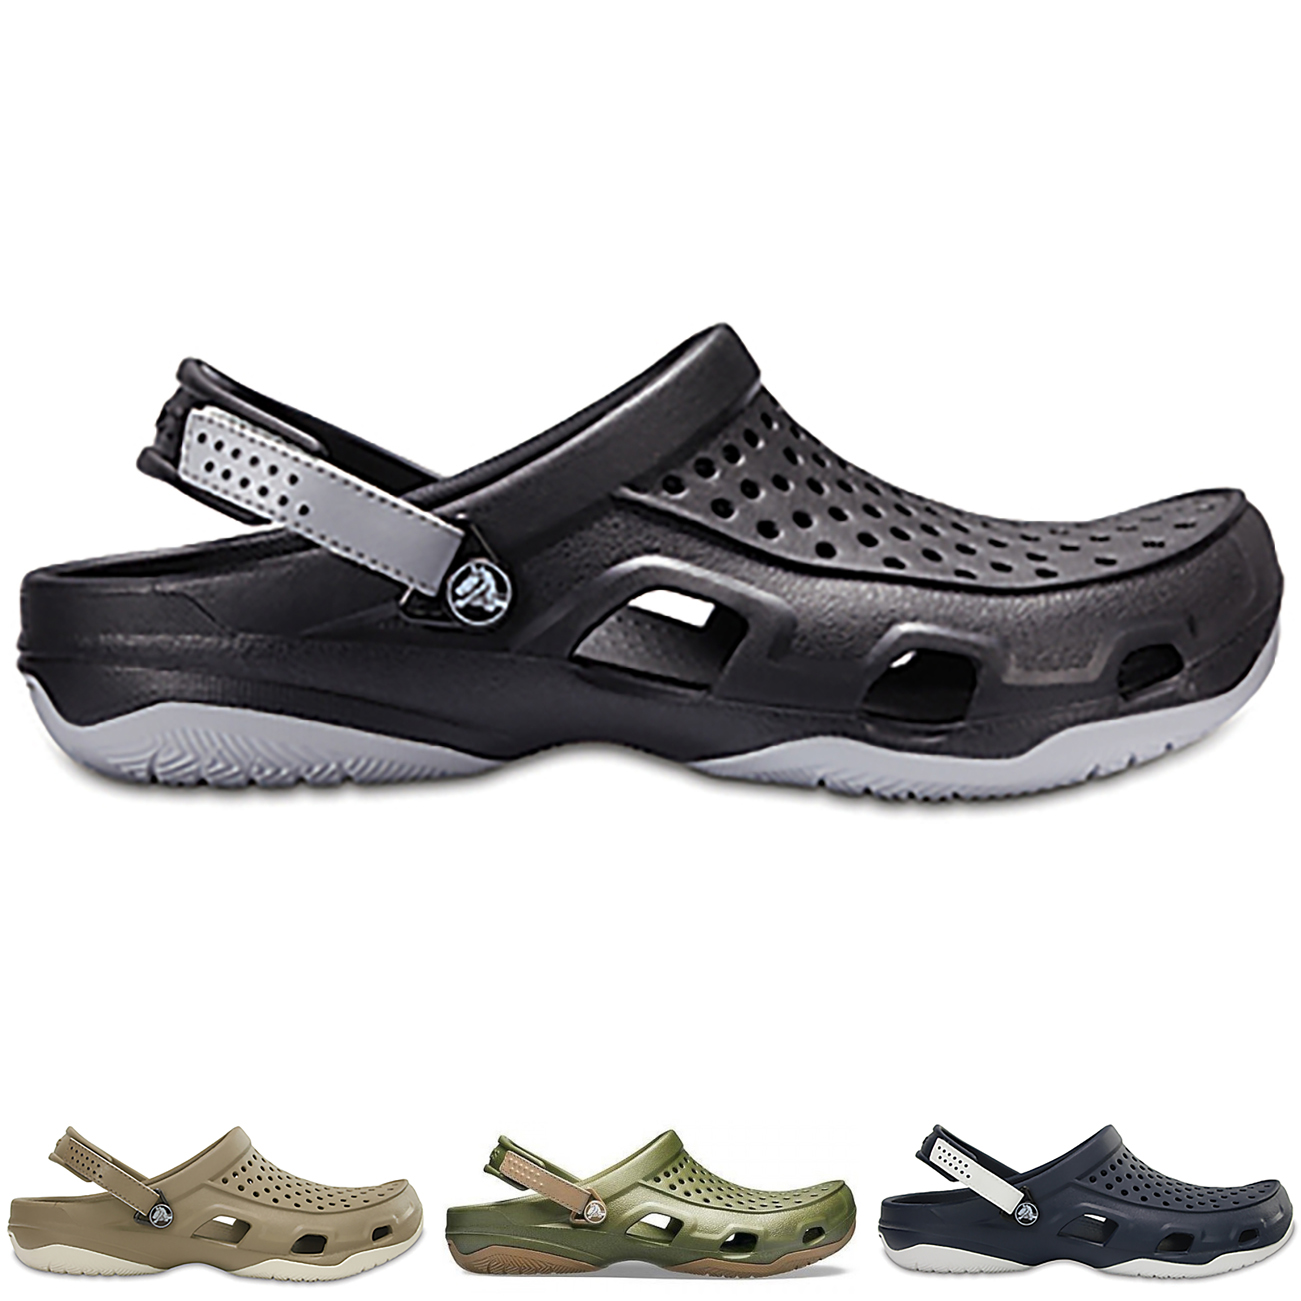 4d8c60469cb09 Image is loading Mens-Crocs-Swiftwater-Deck-Clog-Outdoor-Cut-Out-